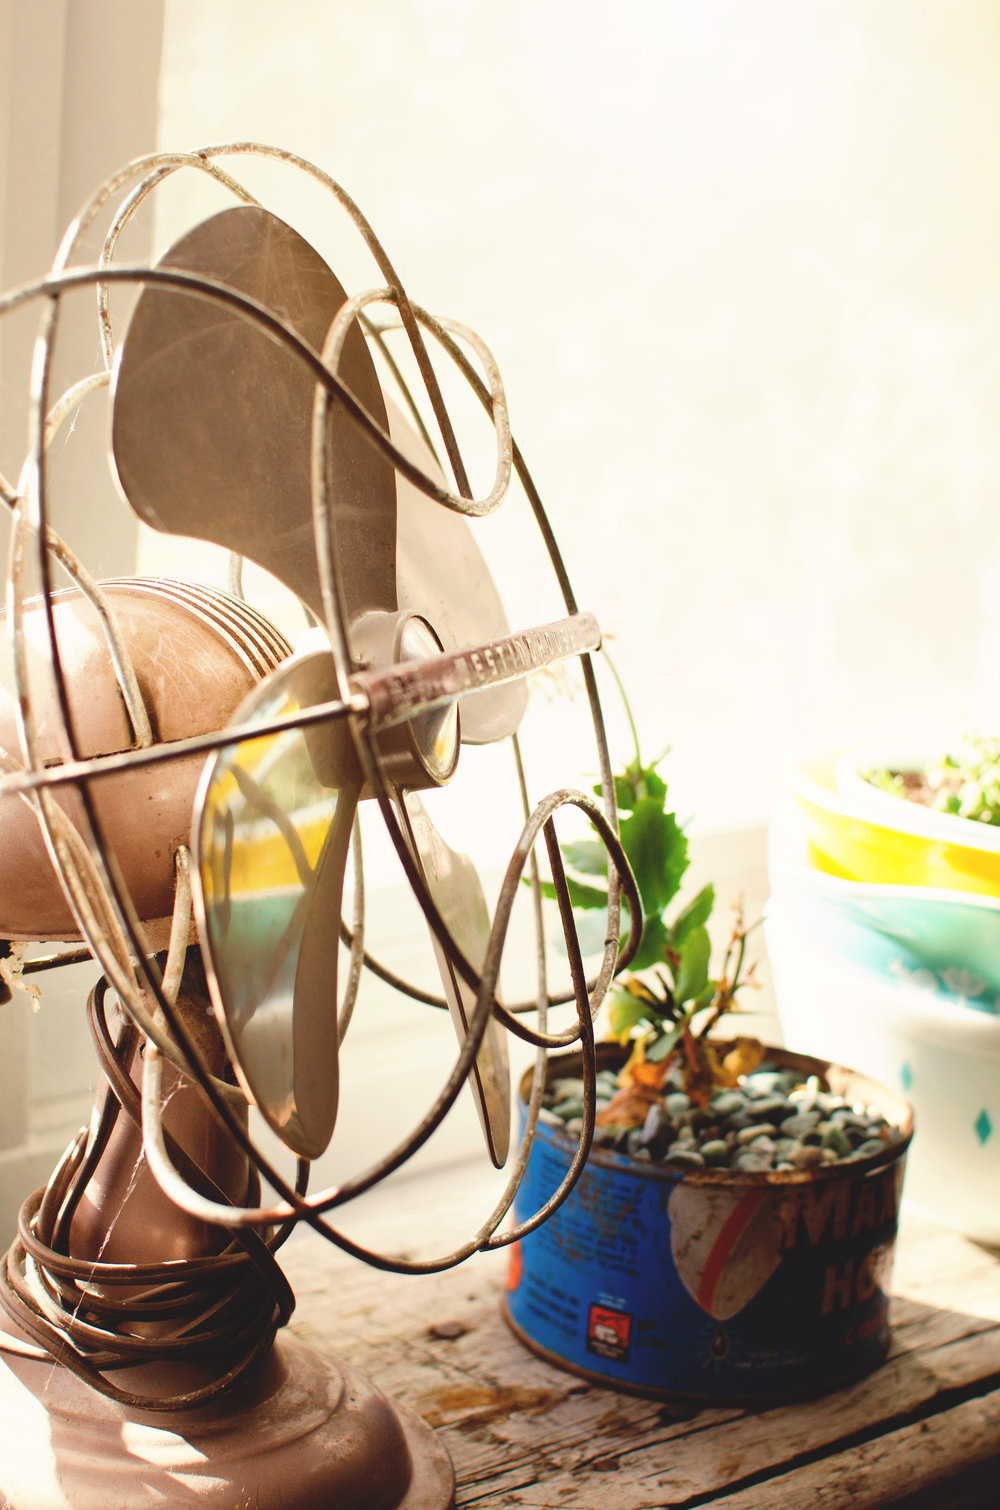 Vintage fan with a potted plant in a vintage can. H.Prall & Co. | hprallandco.com